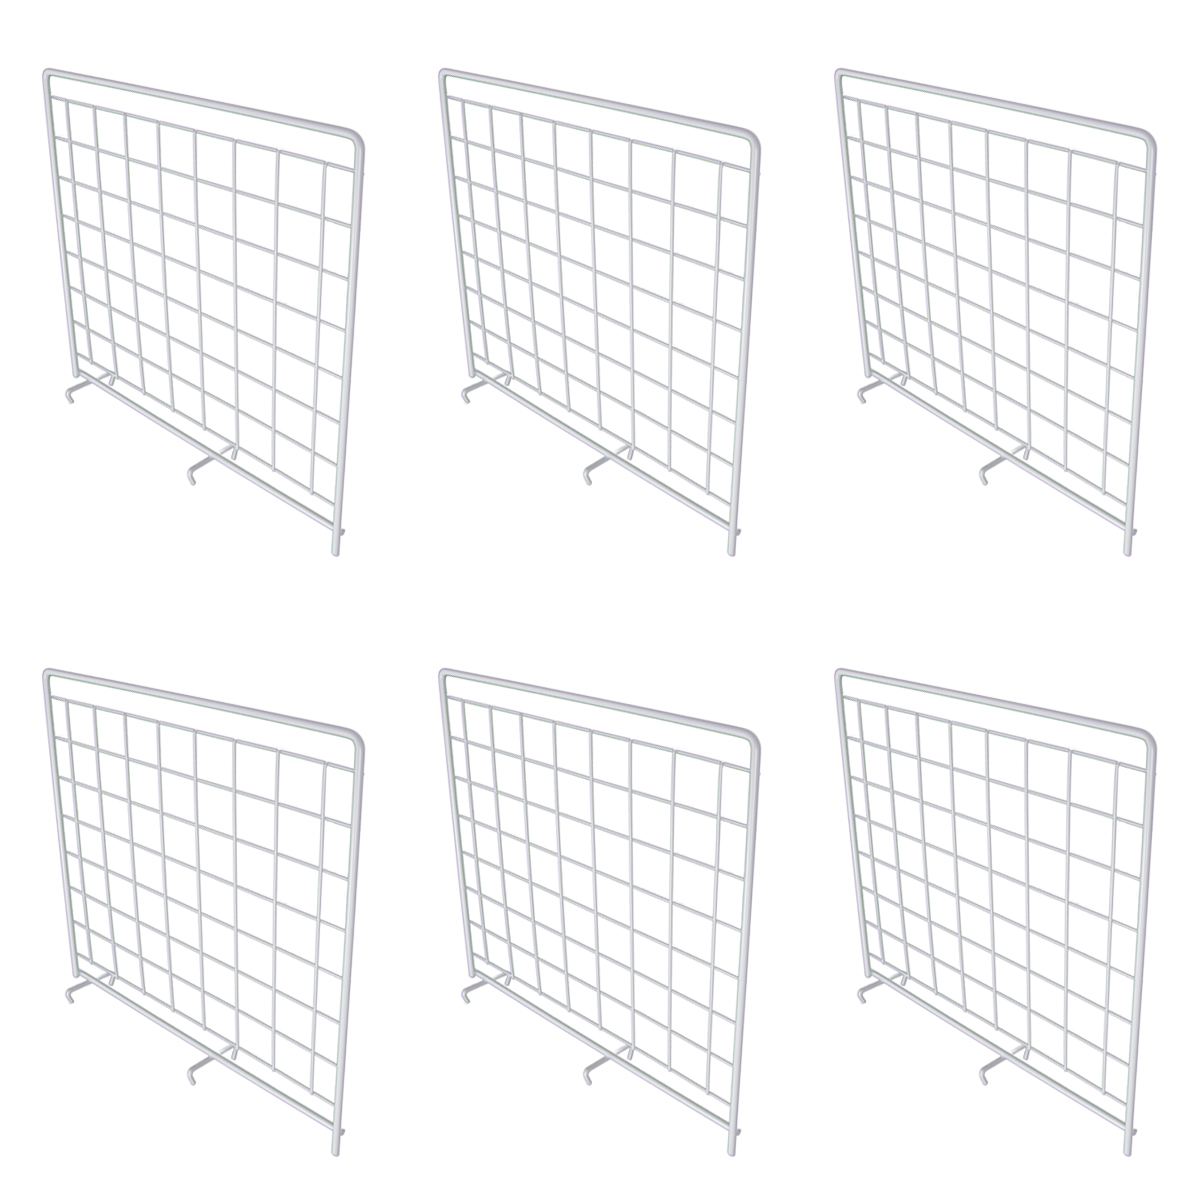 6 Pack Rubbermaid White Grid Wire Shelf Dividers For Closets Storage Shelving Systems